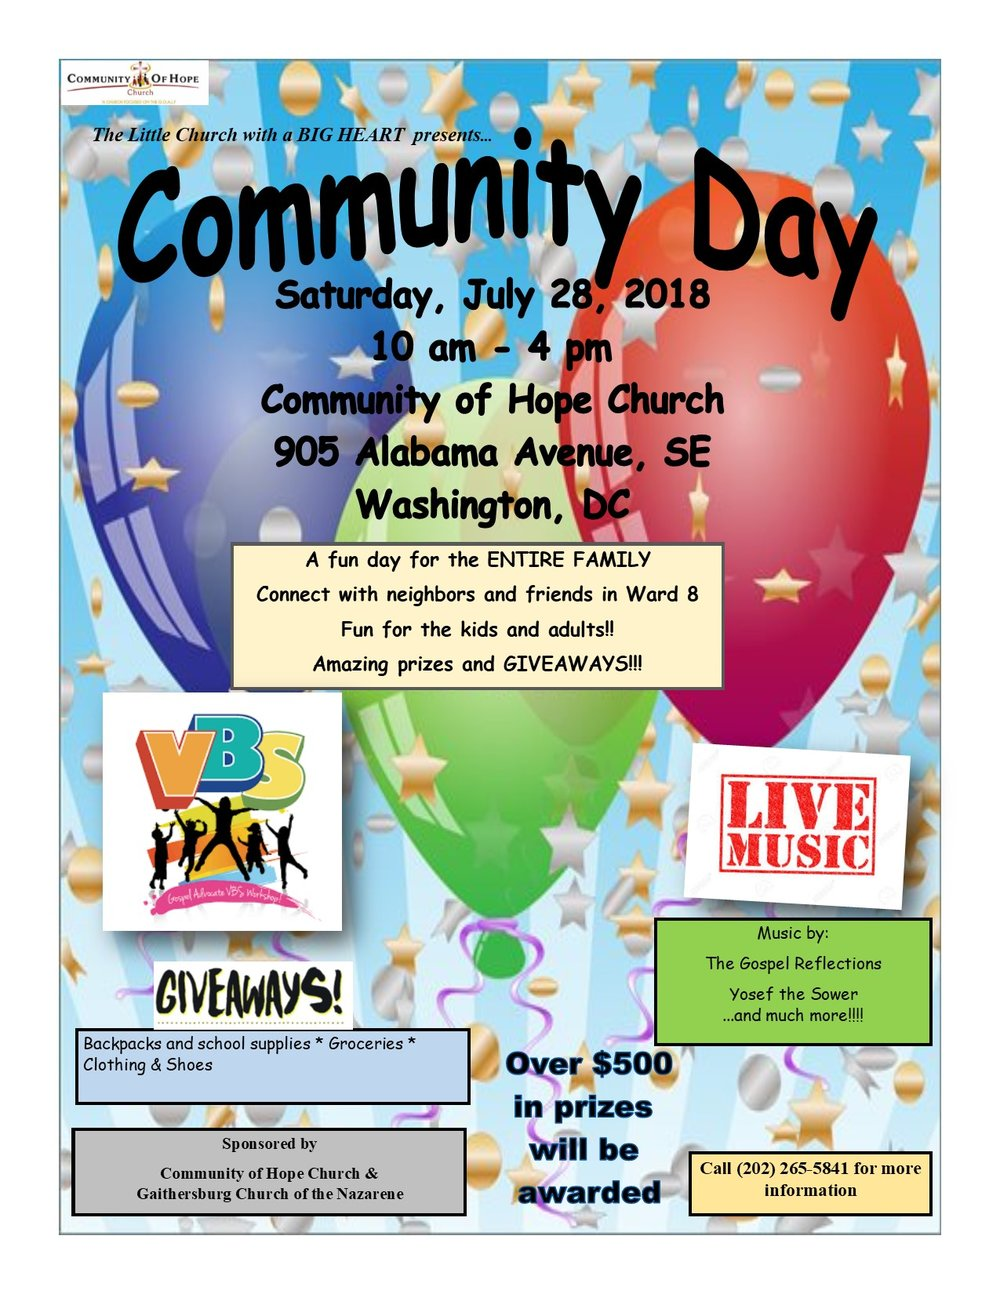 Community%20Day%20flyer_updated%20071618.jpg